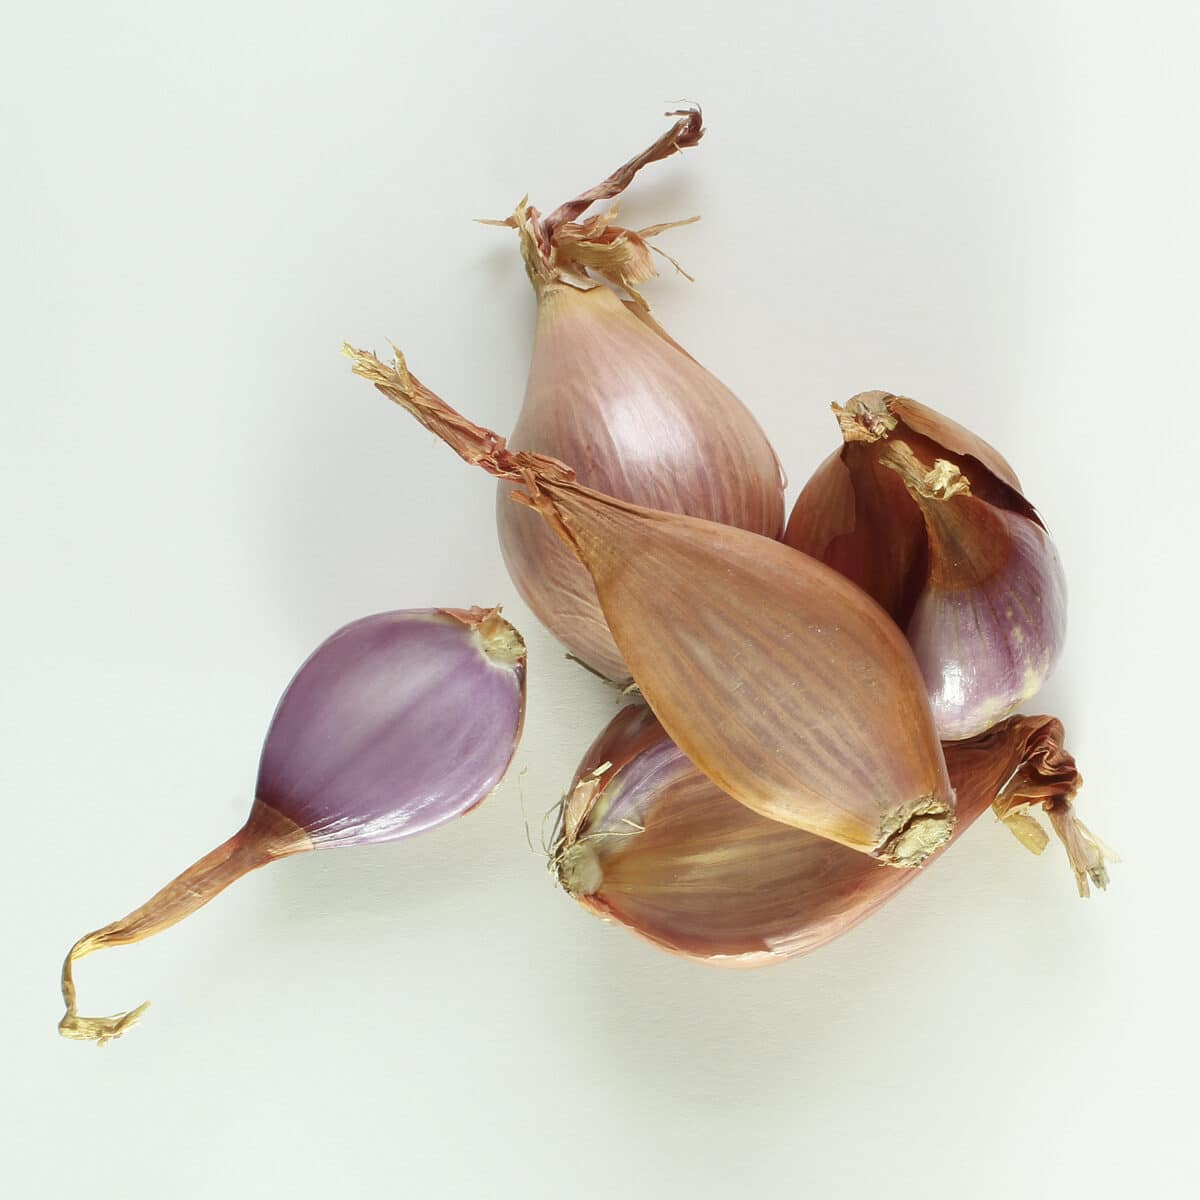 group of shallots